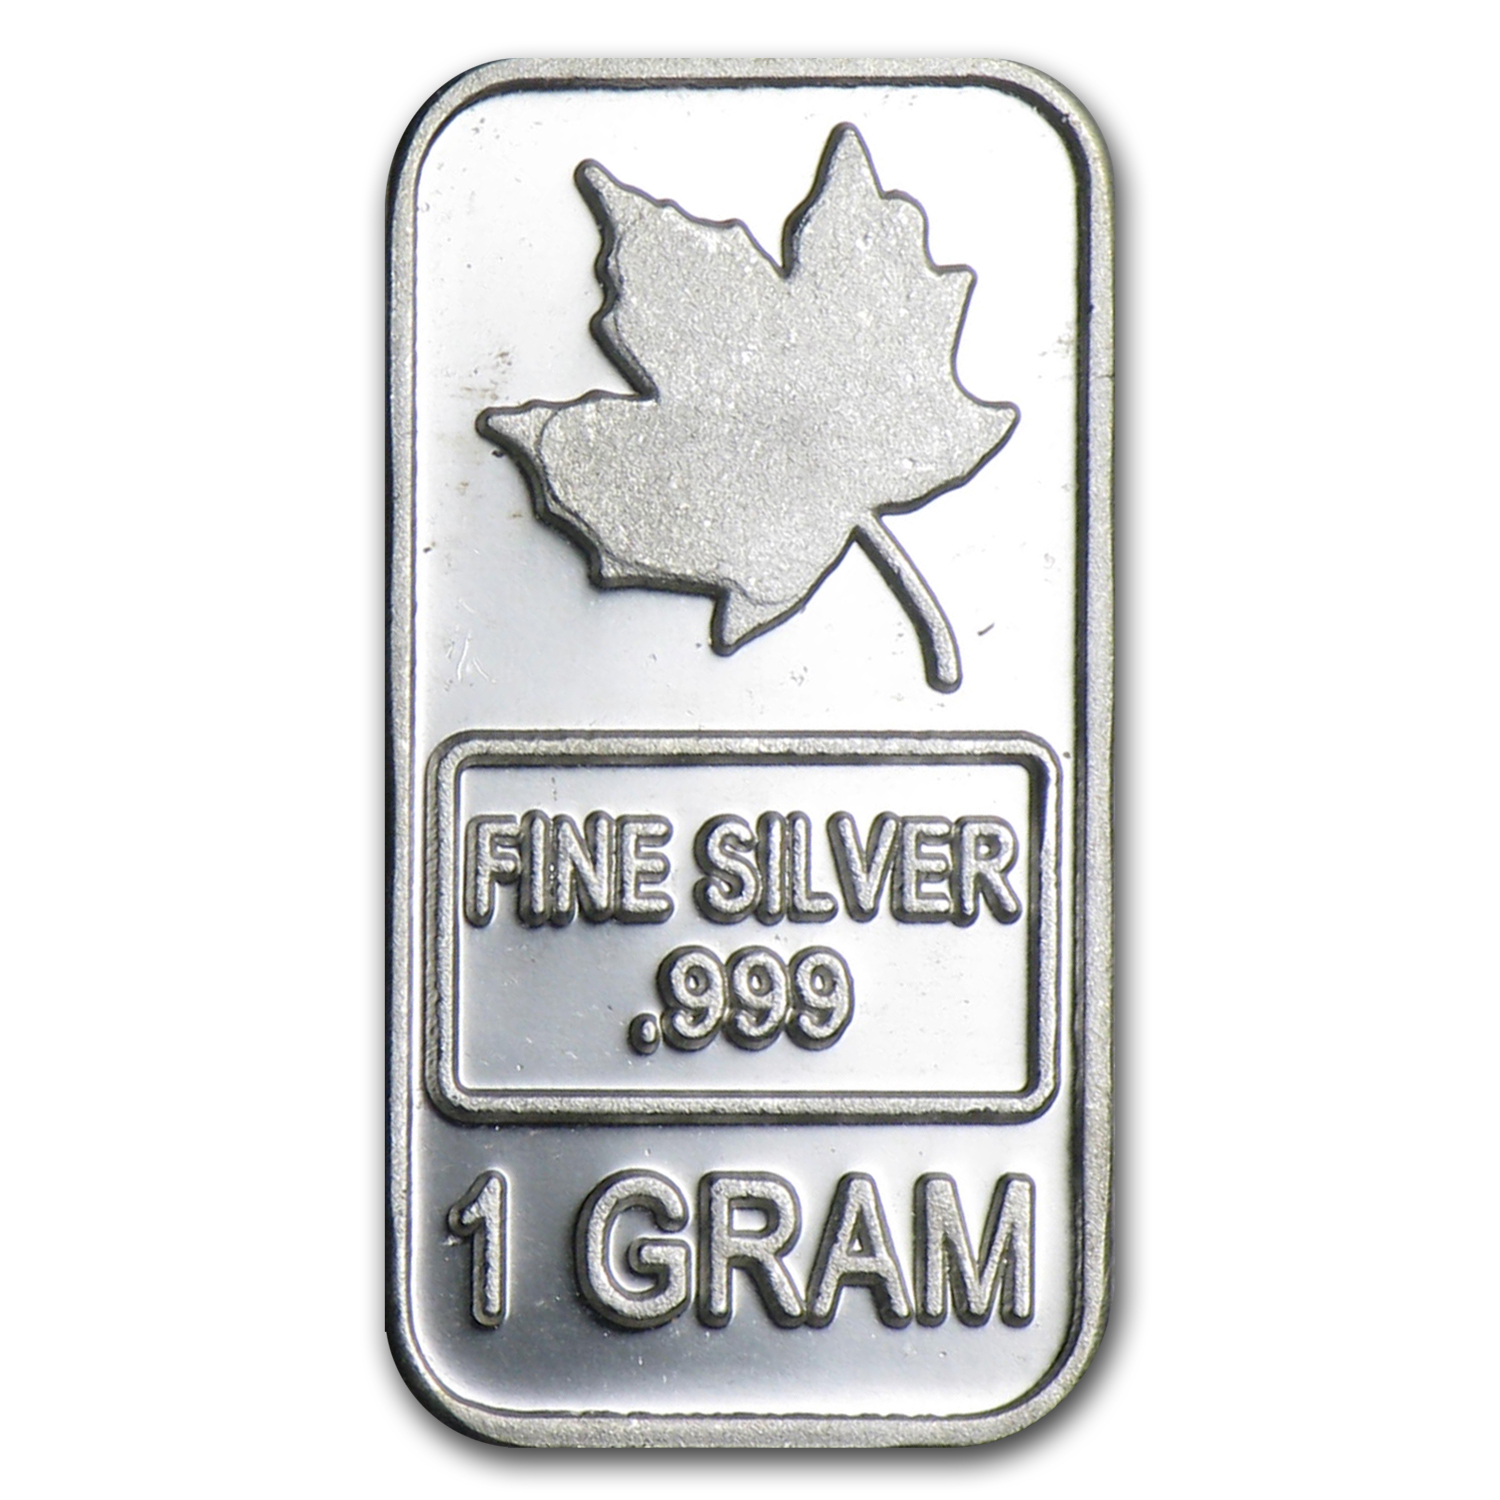 1 gram Silver Bar - Maple Leaf